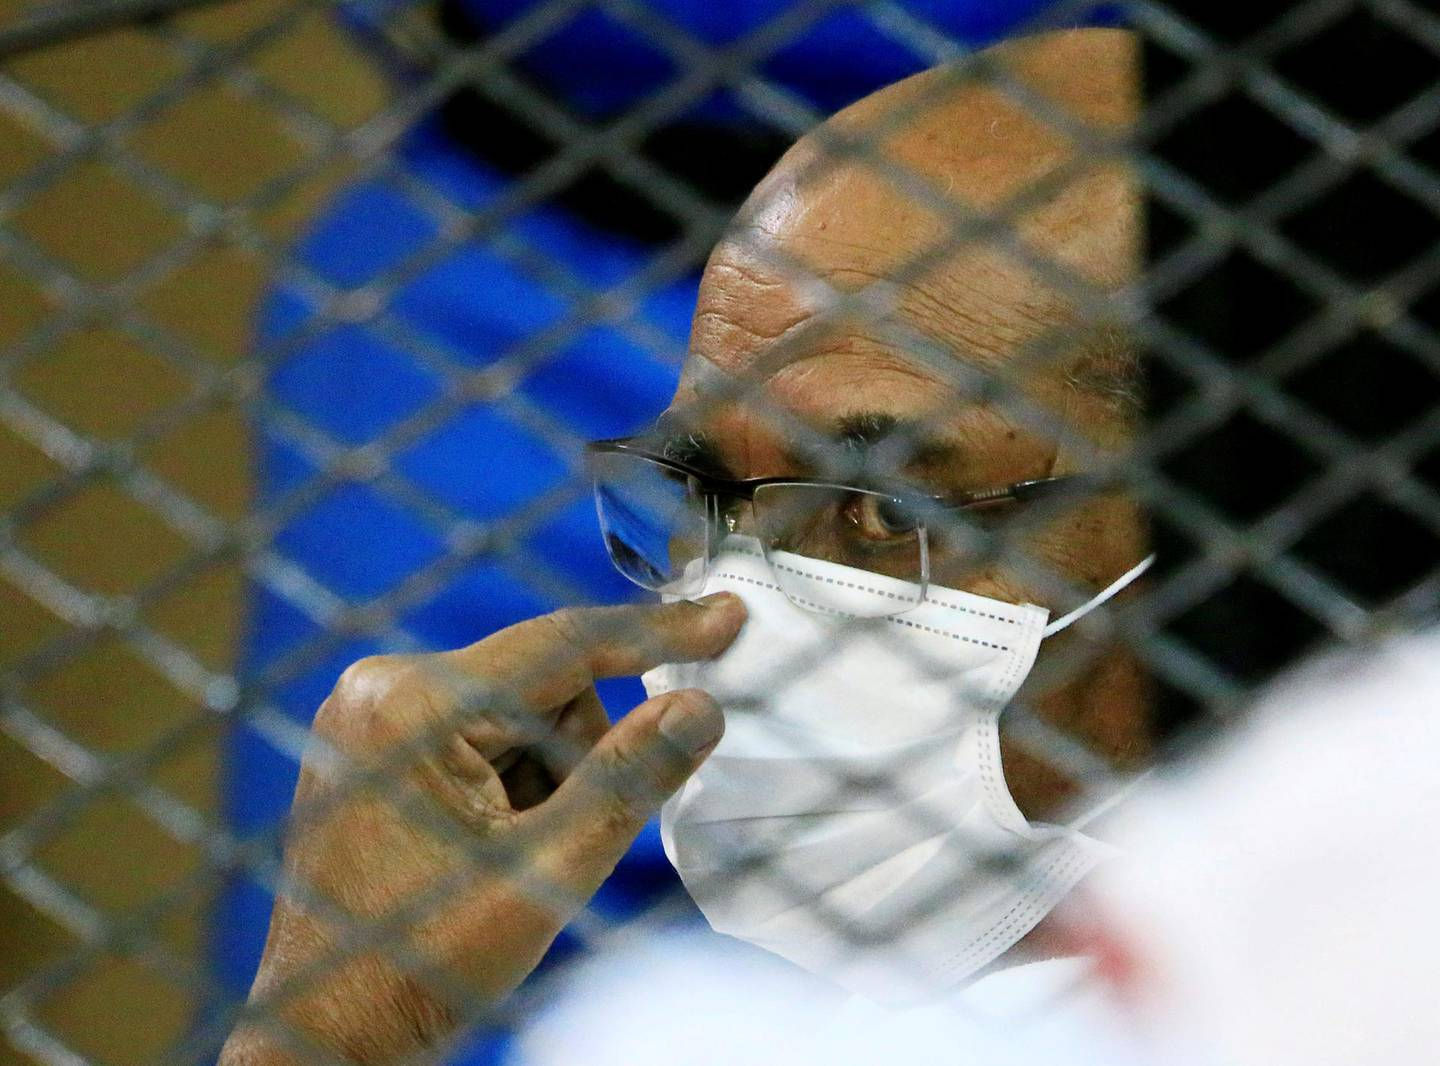 FILE PHOTO: Sudan's ousted president, Omar al-Bashir, is seen inside the defendant's cage during his and some of his former allies' trial over the 1989 military coup that brought him to power, at a courthouse in Khartoum, Sudan, September 15, 2020. REUTERS/Mohamed Nureldin Abdallah/File Photo